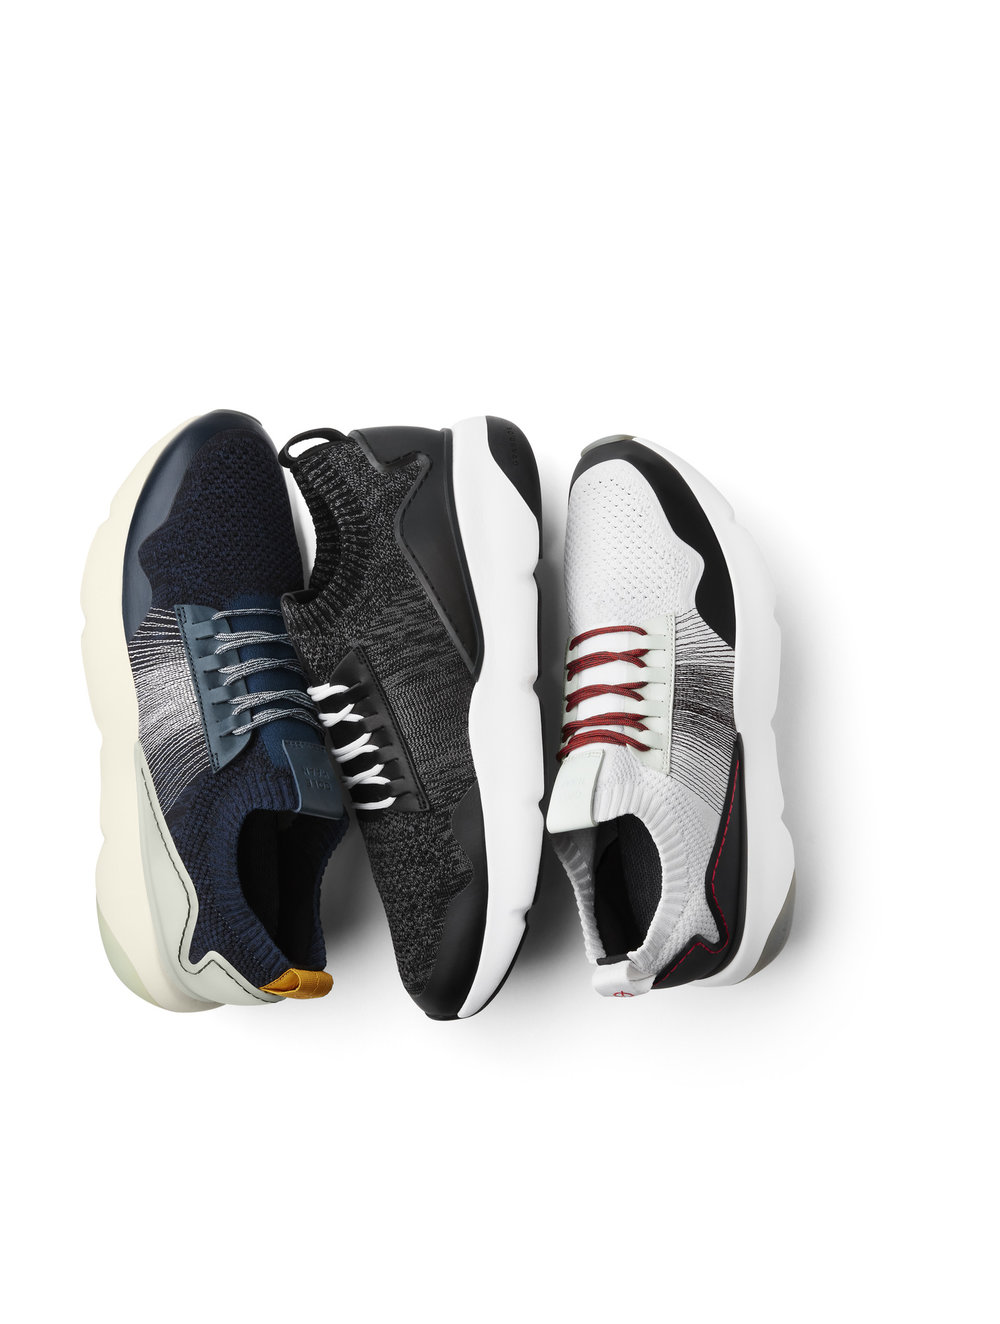 Cole Haan_ZERØGRAND ALL-DAY TRAINER WITH STITCHLITE™_OPTIC WHITE_NIMBUS CLOUD_PAVEMENT_IVORY_BLACK_GRAY PINSTRIPE KNIT_BLACK_OPTIC WHITE_BLUEBERRY_BLACK_MORNING MIST_GOLDEN ORANGE_IVORY_cover.jpg